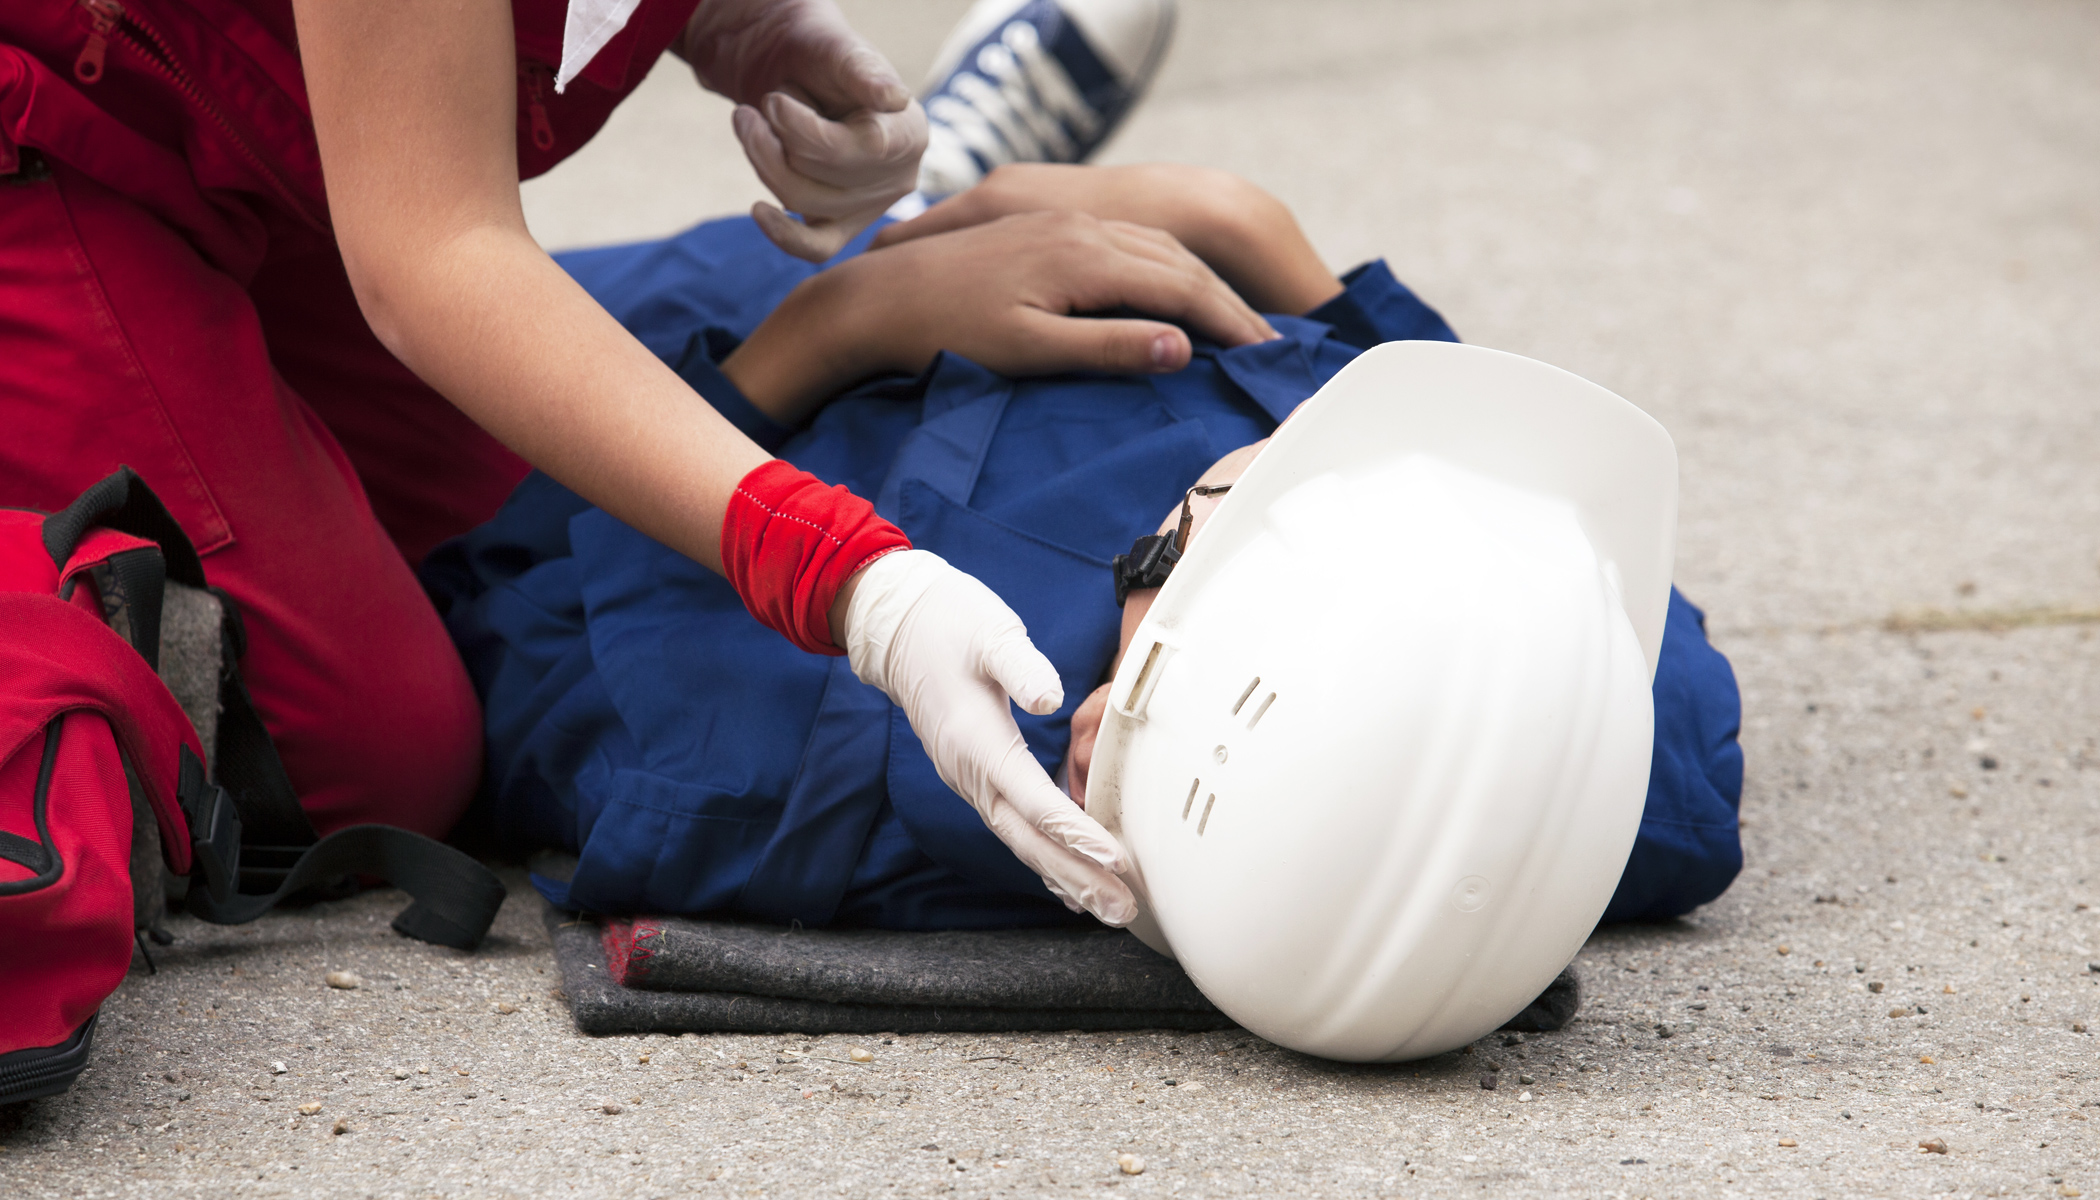 Certified Rescue Courses, North Dartmouth MA, low cost CPR classes, affordable on-site CPR training courses, MA, RI, CT